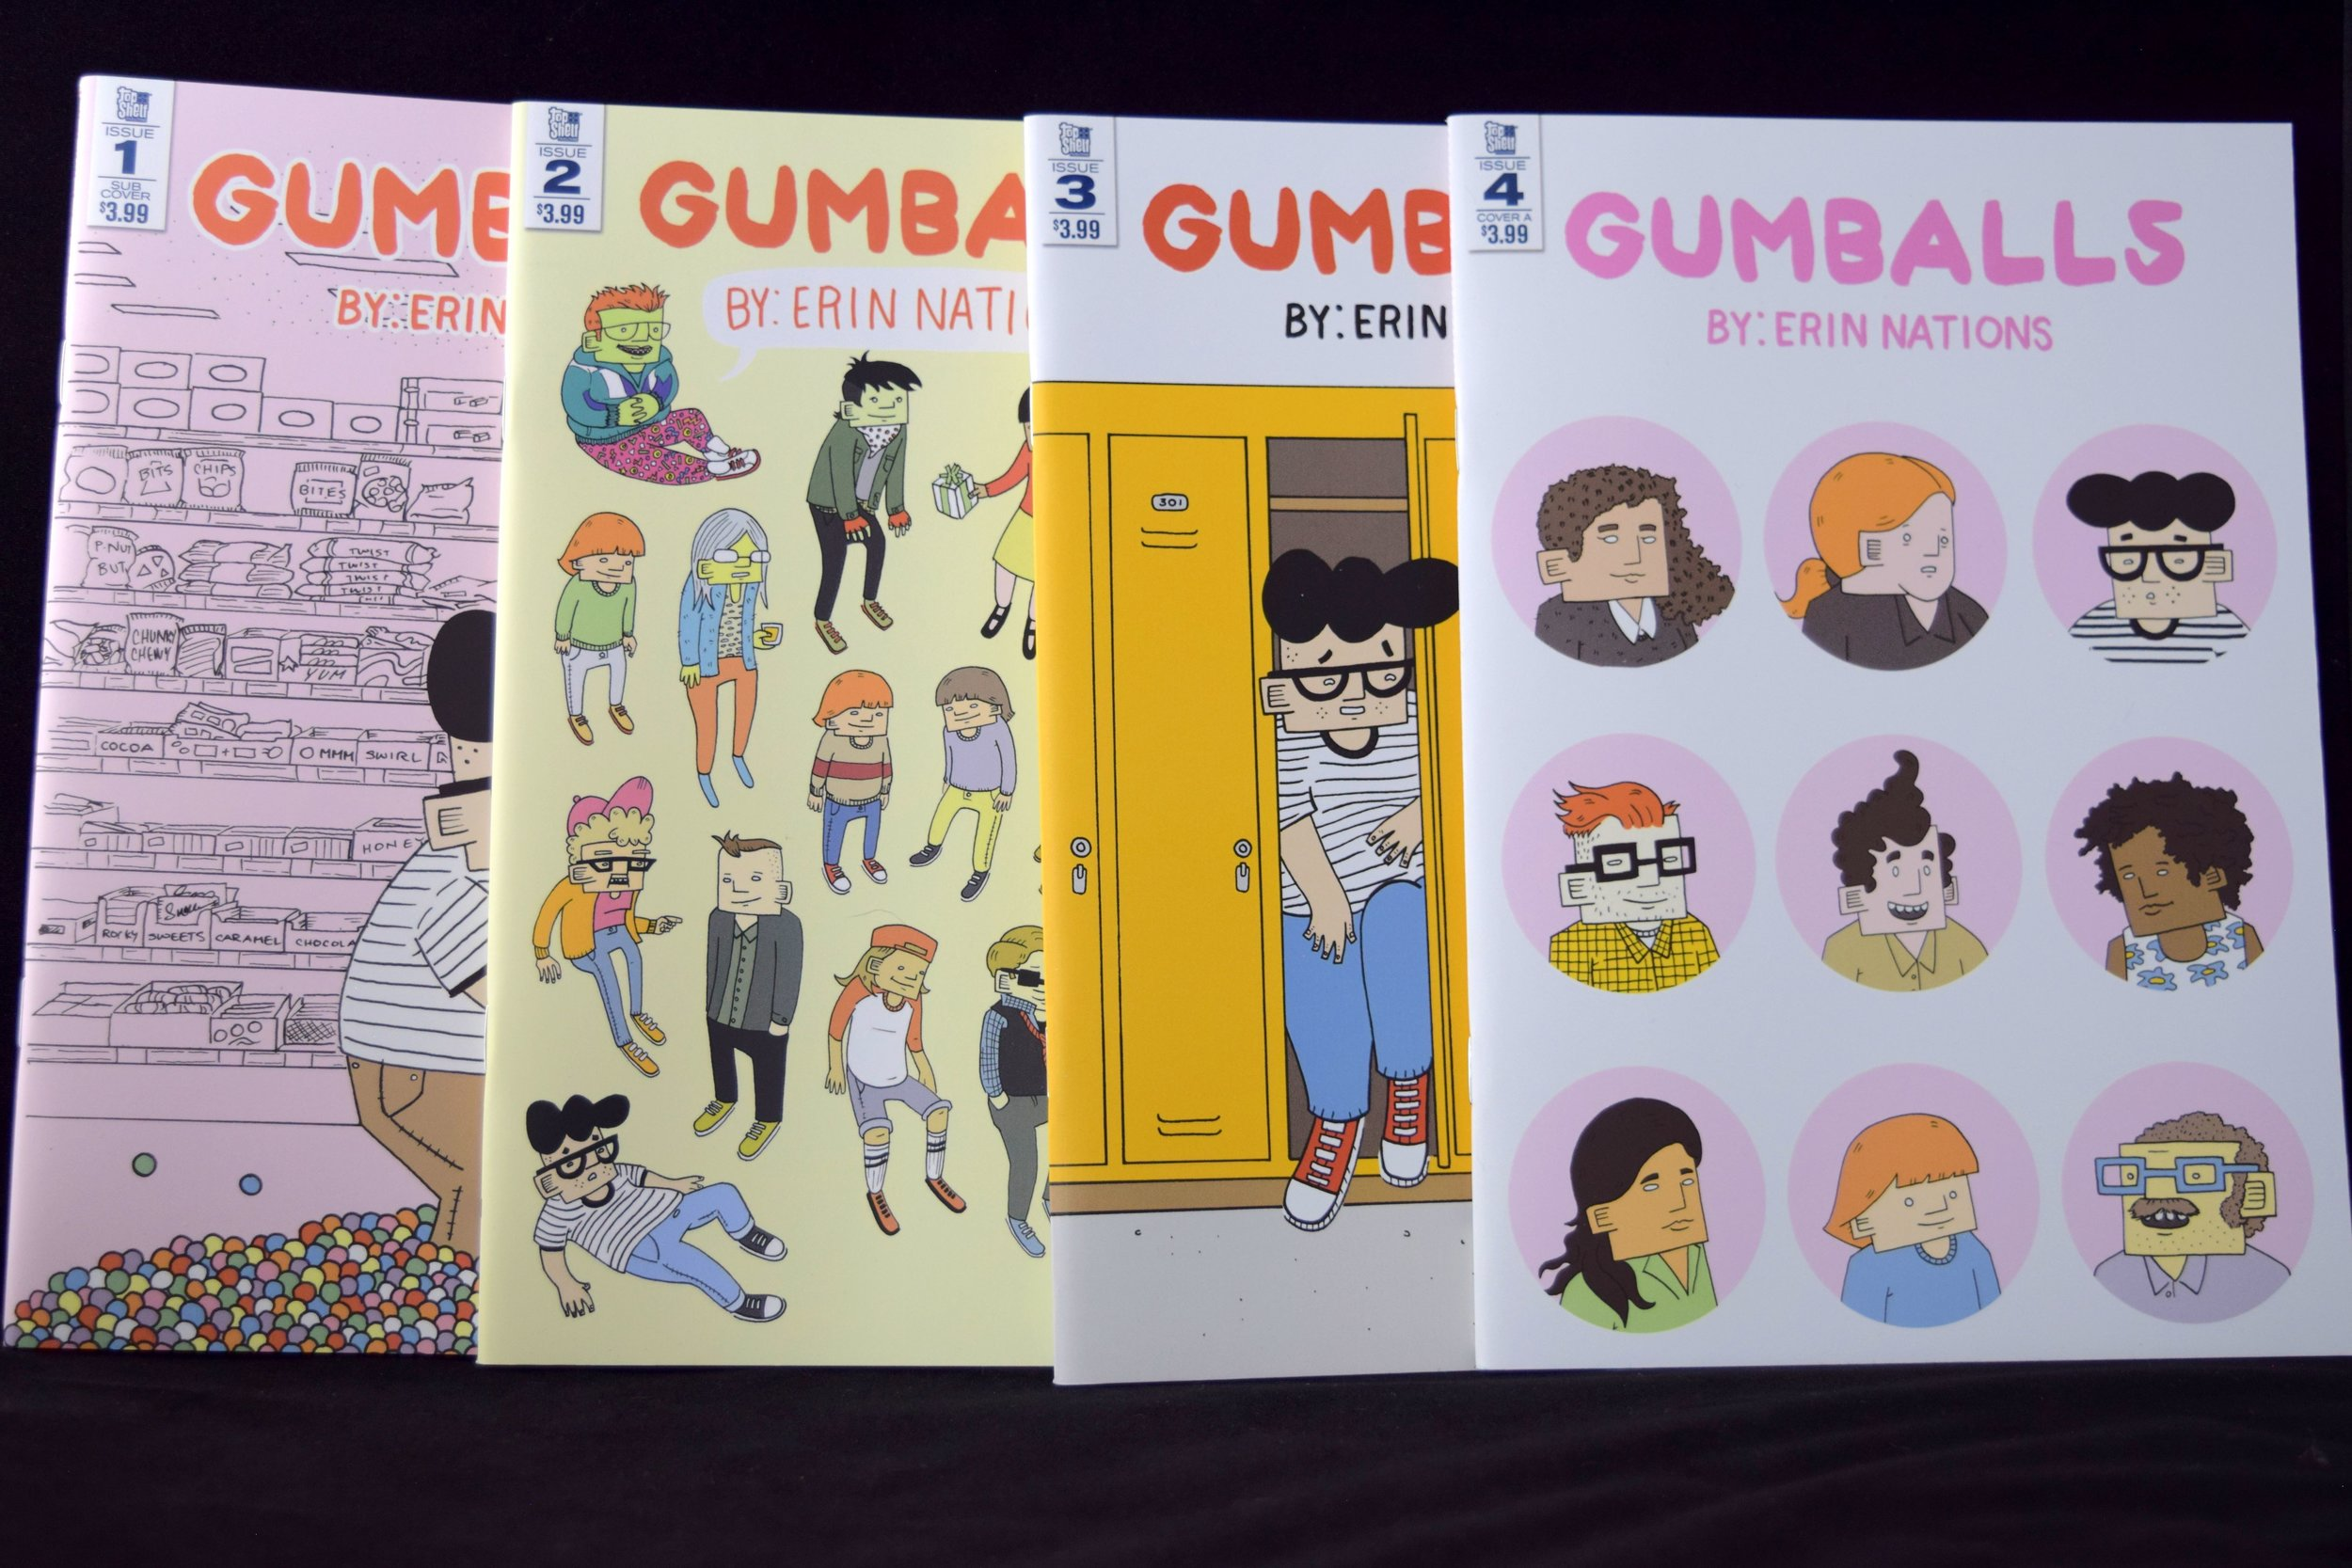 Gumballs #1, #2, #3, &#4 from Erin Nations.